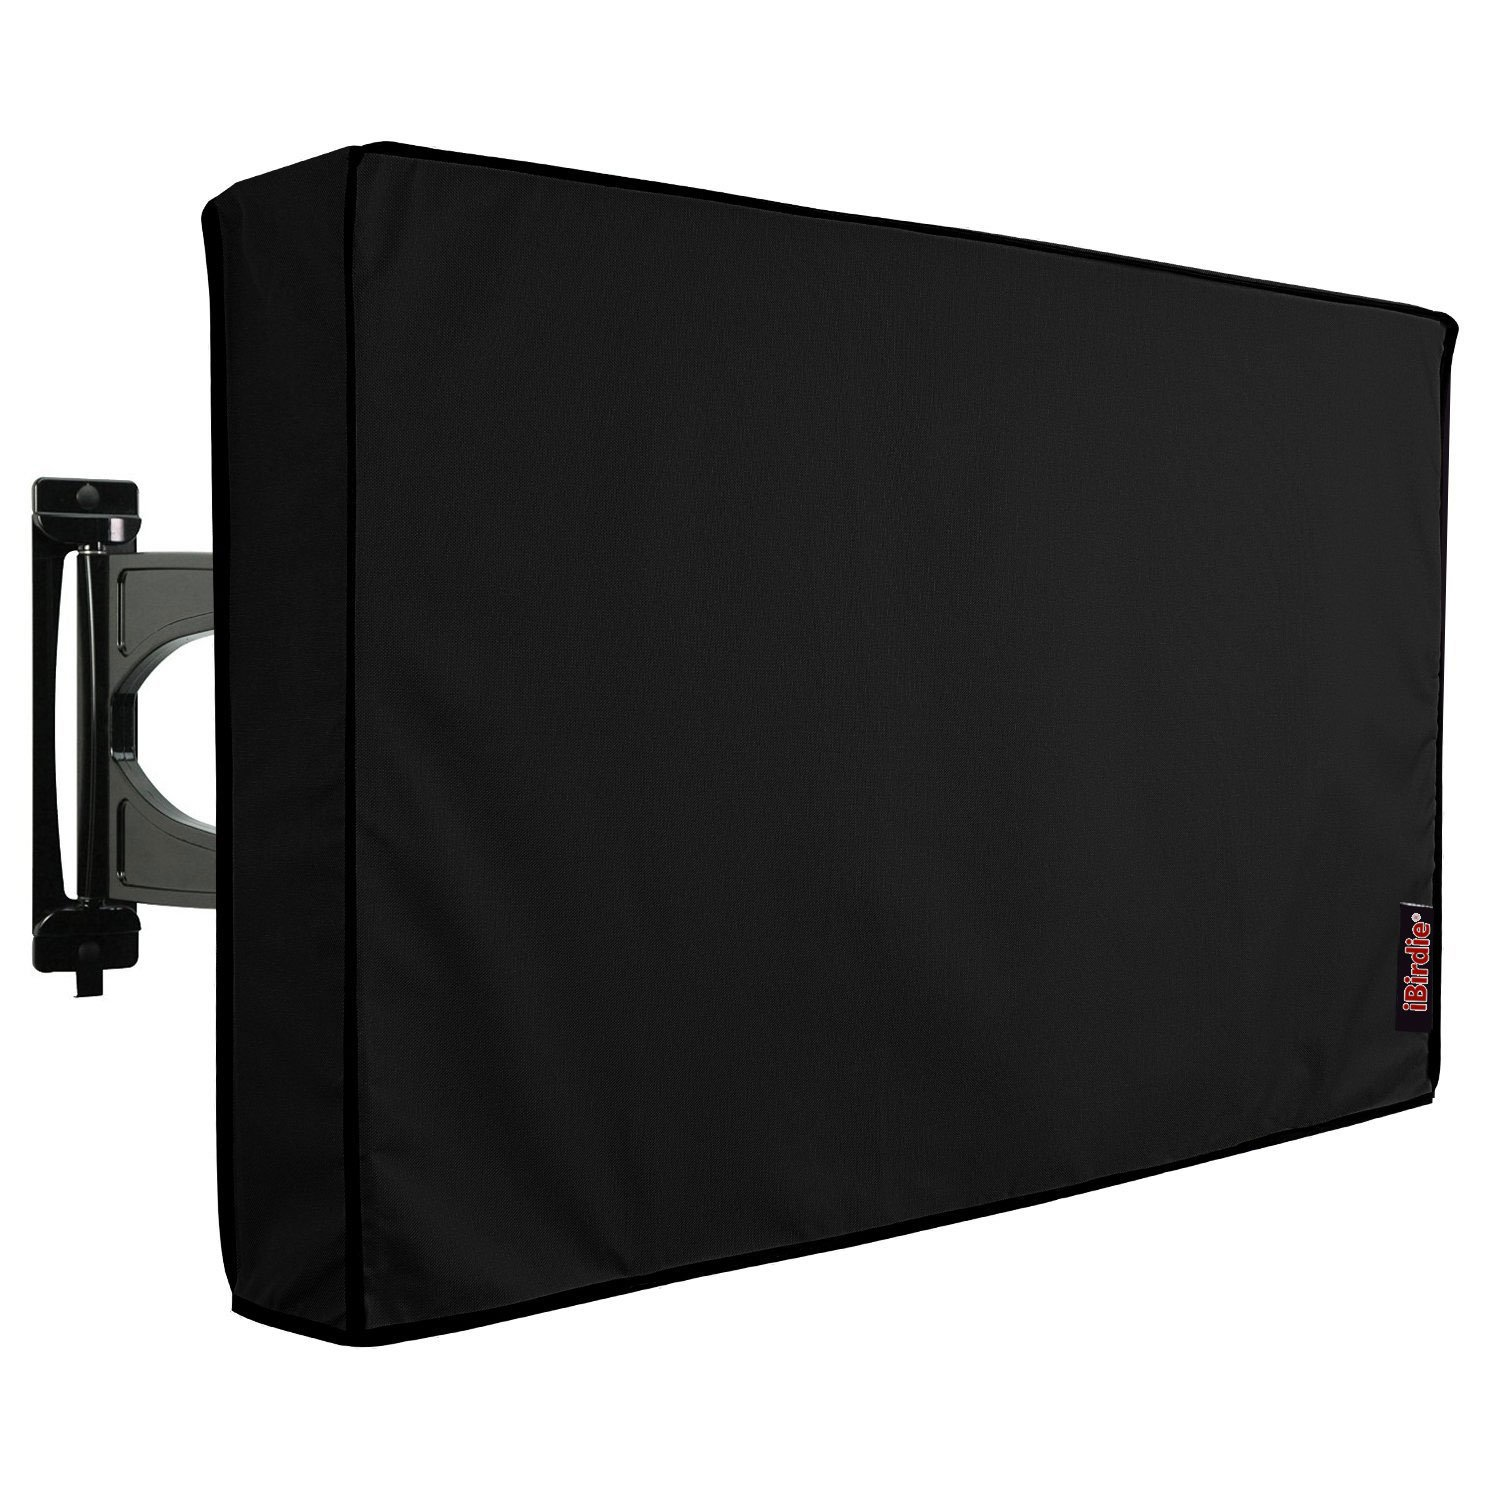 Outdoor TV Covers 52'' - 55'' by iBirdie- with Inside Bottom Cover and Scratch Resistant Liner - Weatherproof &Dust-proof -300 Denier Polyester Material-Compatible with Wall Mounts and Stands